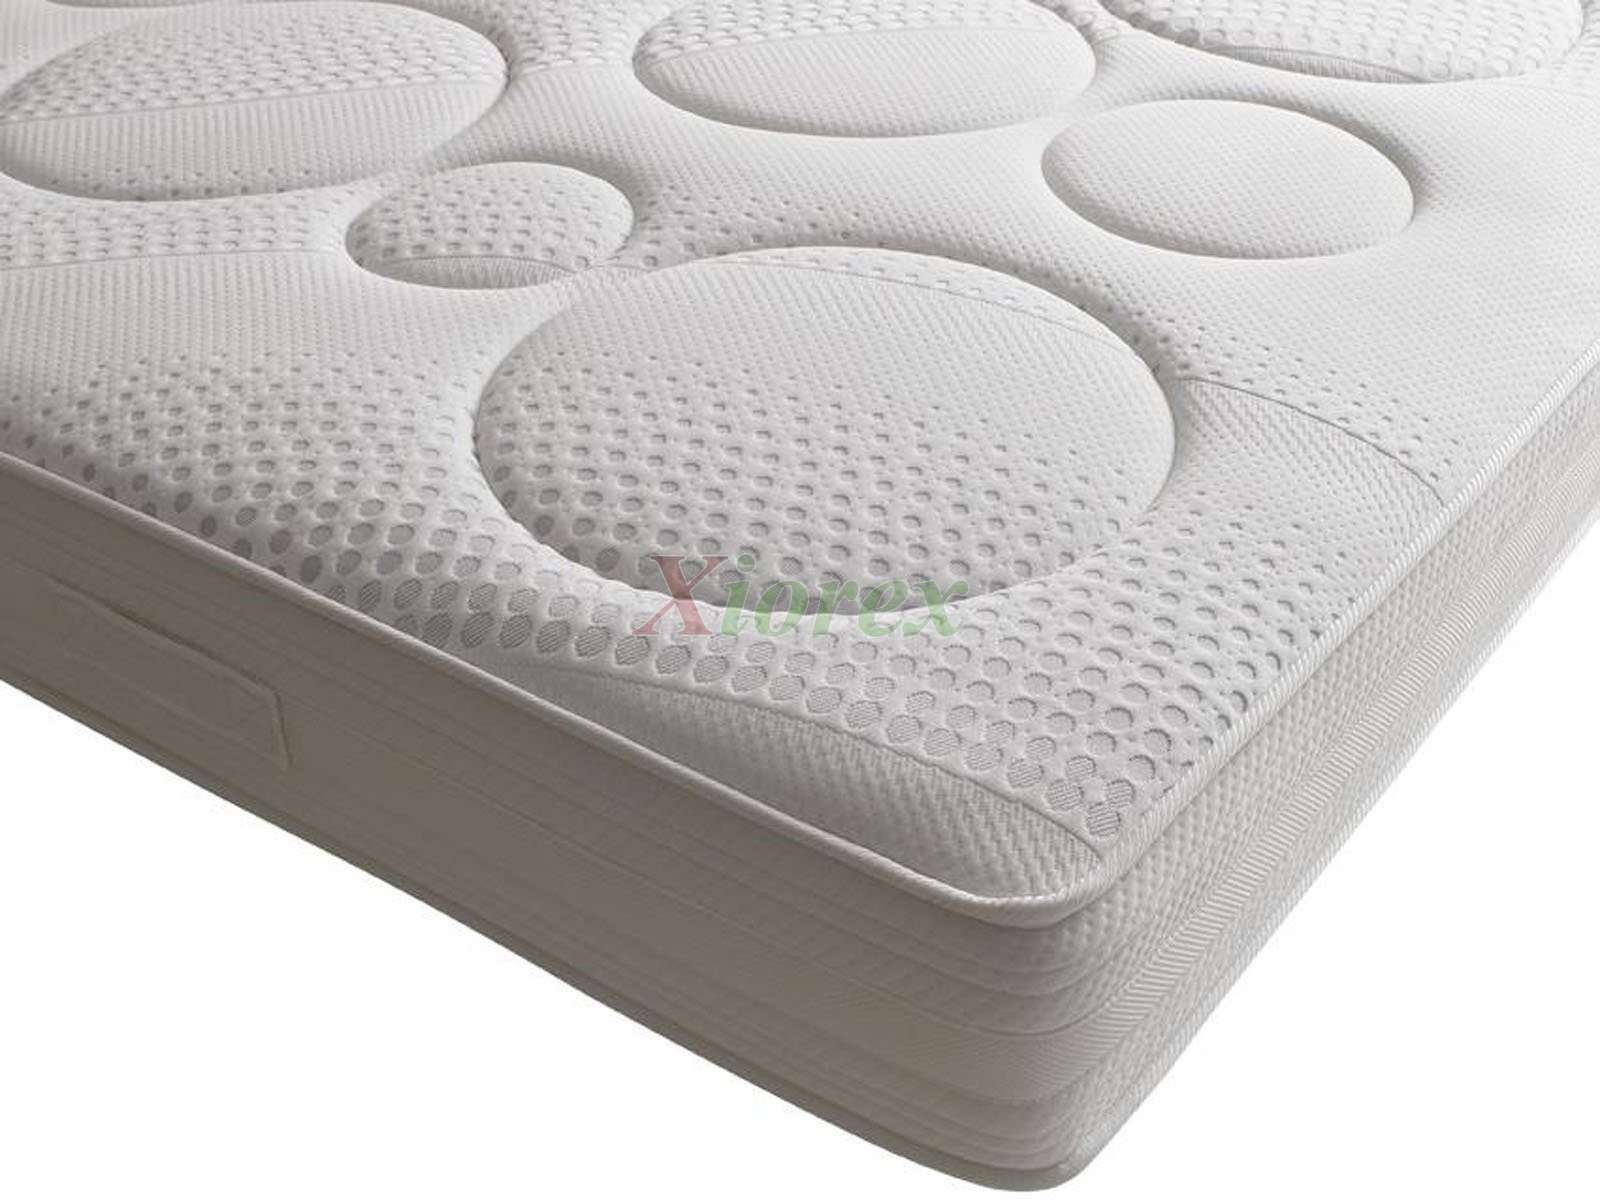 Neptune memory foam mattress soy foam mattress by gautier xiorex Memory foam mattress buy